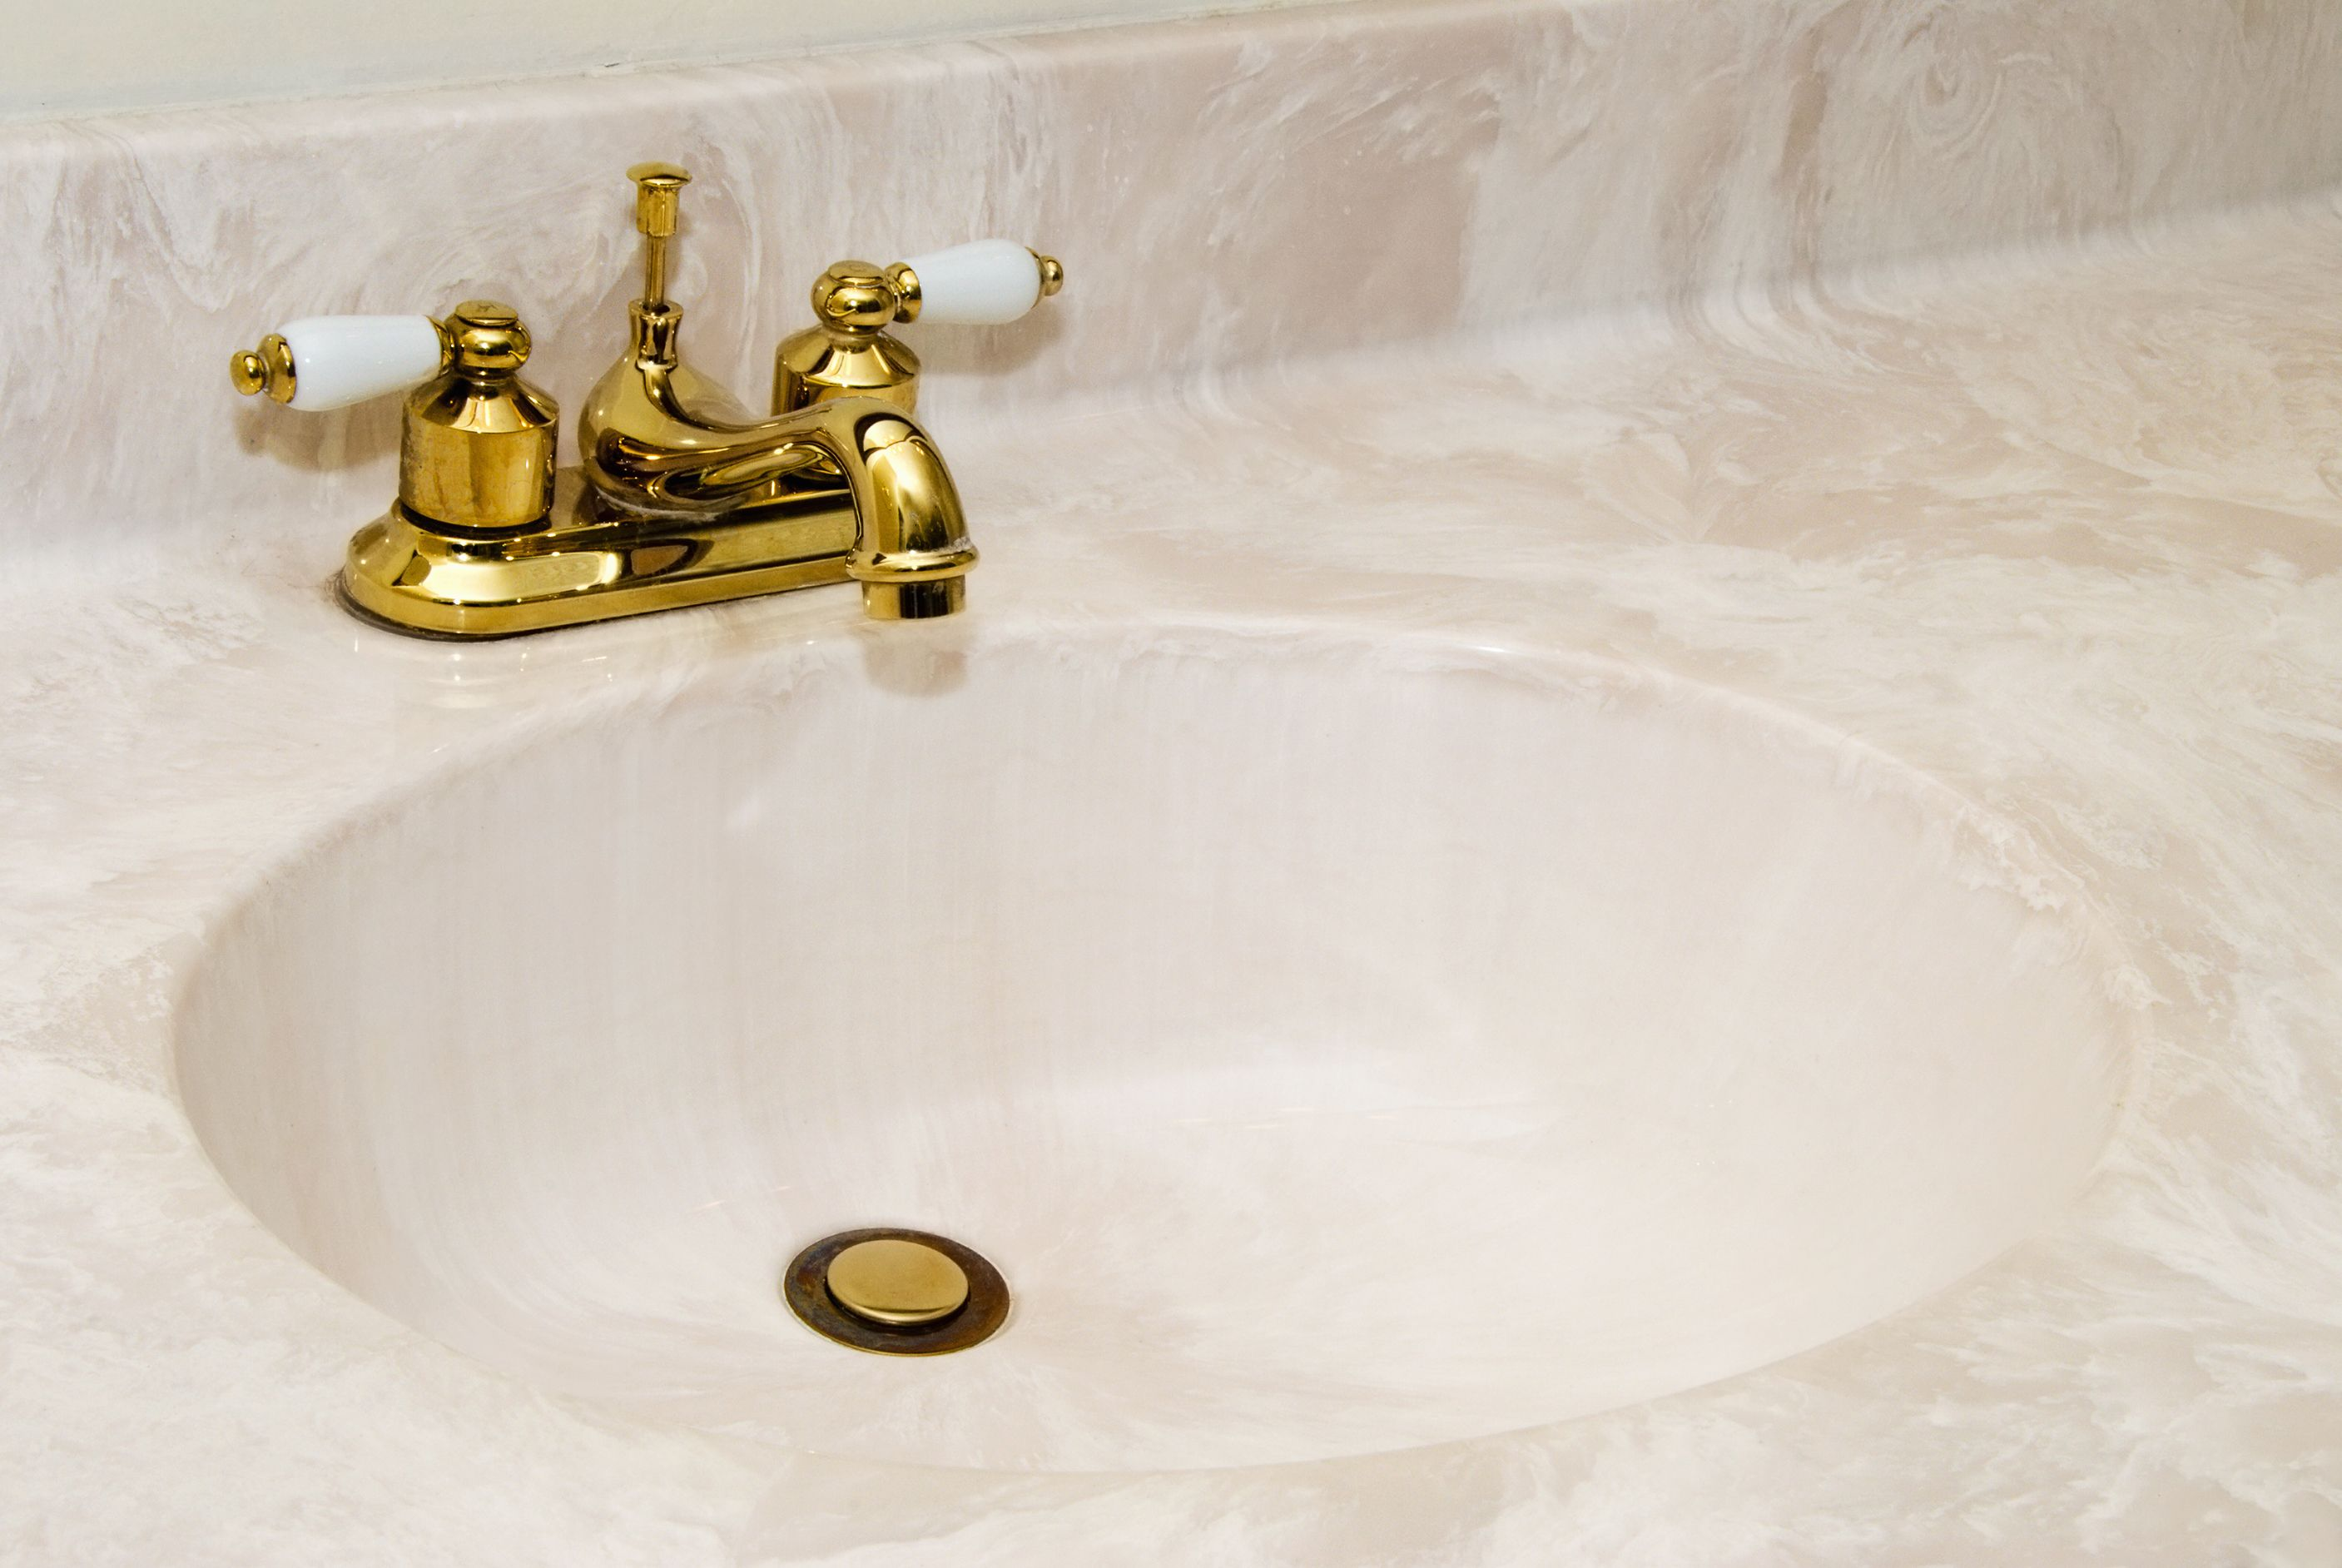 How To Stain Cultured Marble Cultured Marble Cultured Marble Vanity Top Marble Sinks